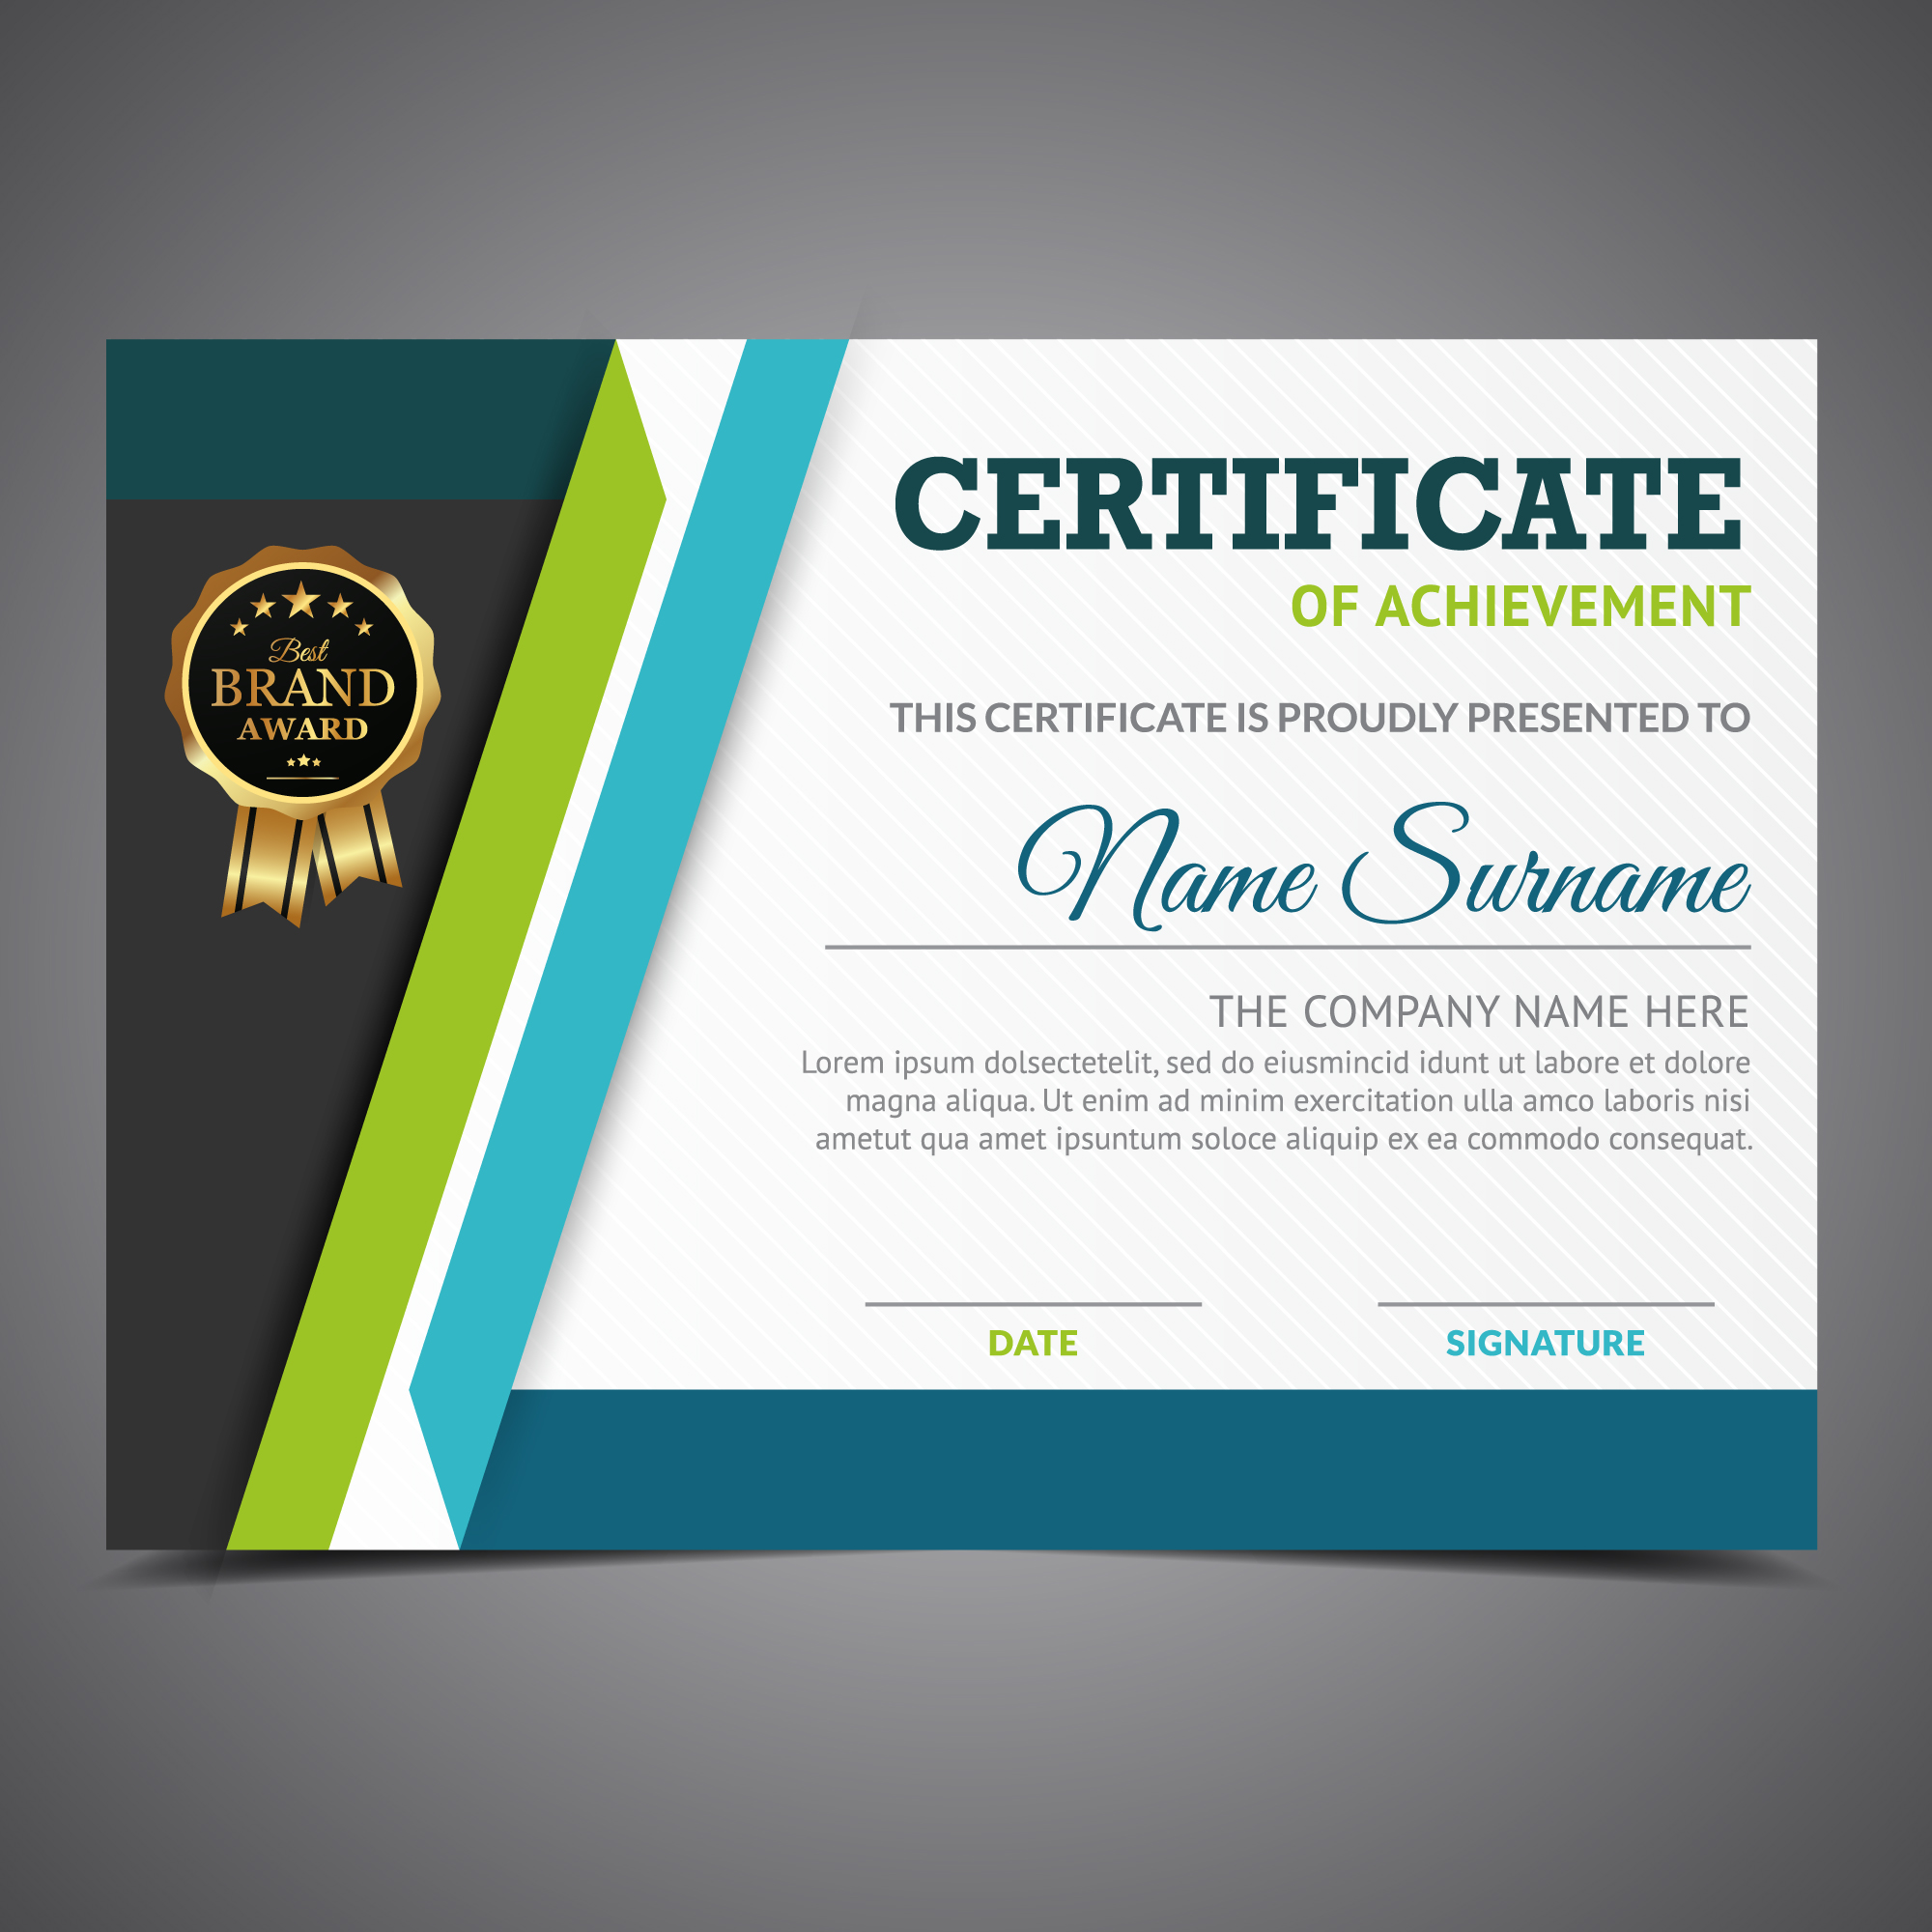 Blue and green certificate of achievement